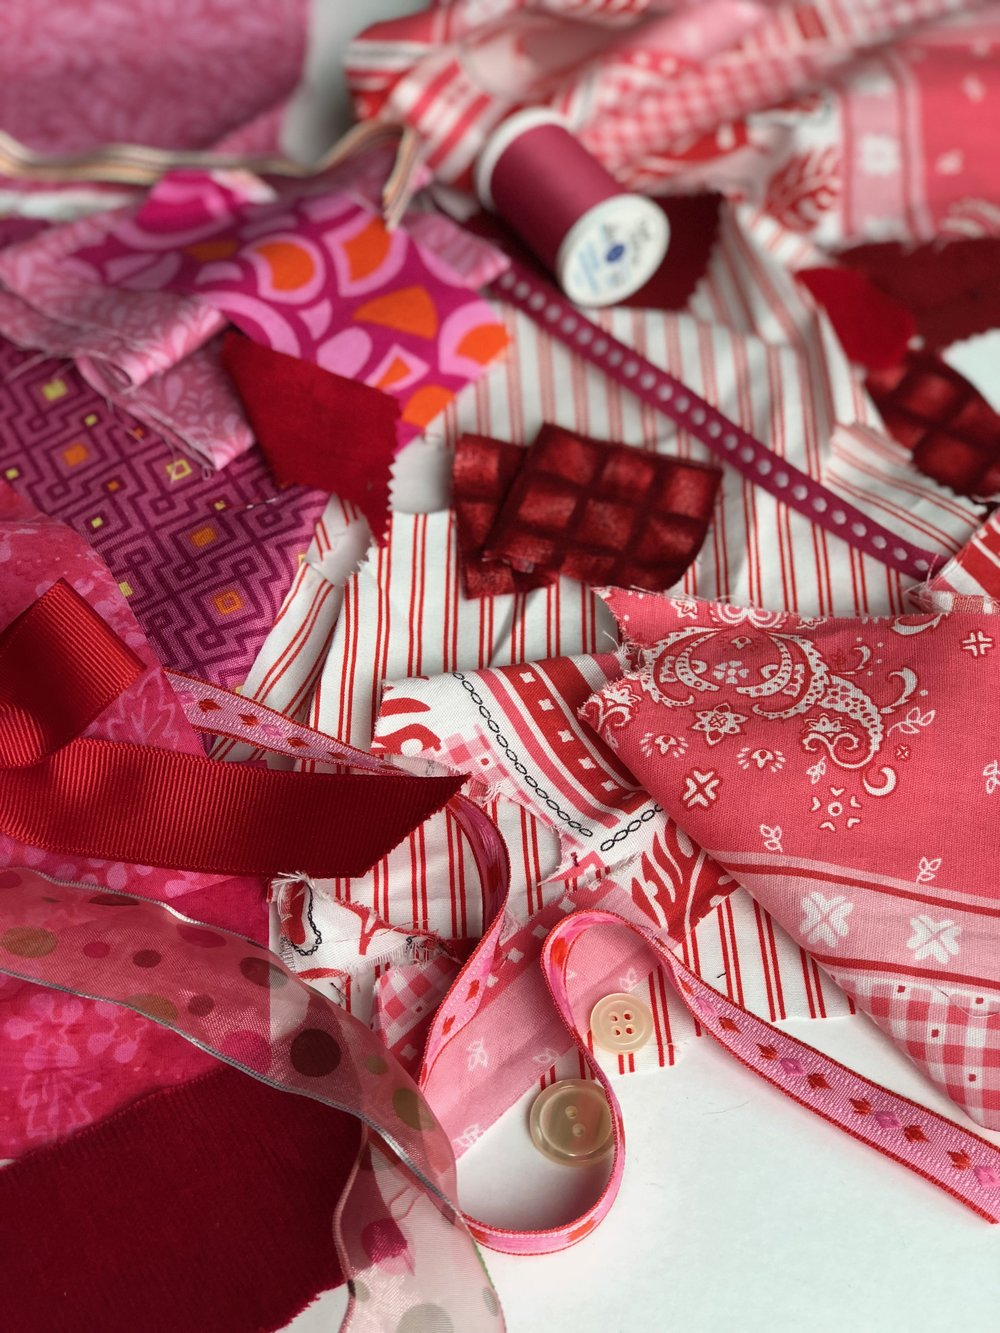 Assorted red and pink fabrics and ribbons